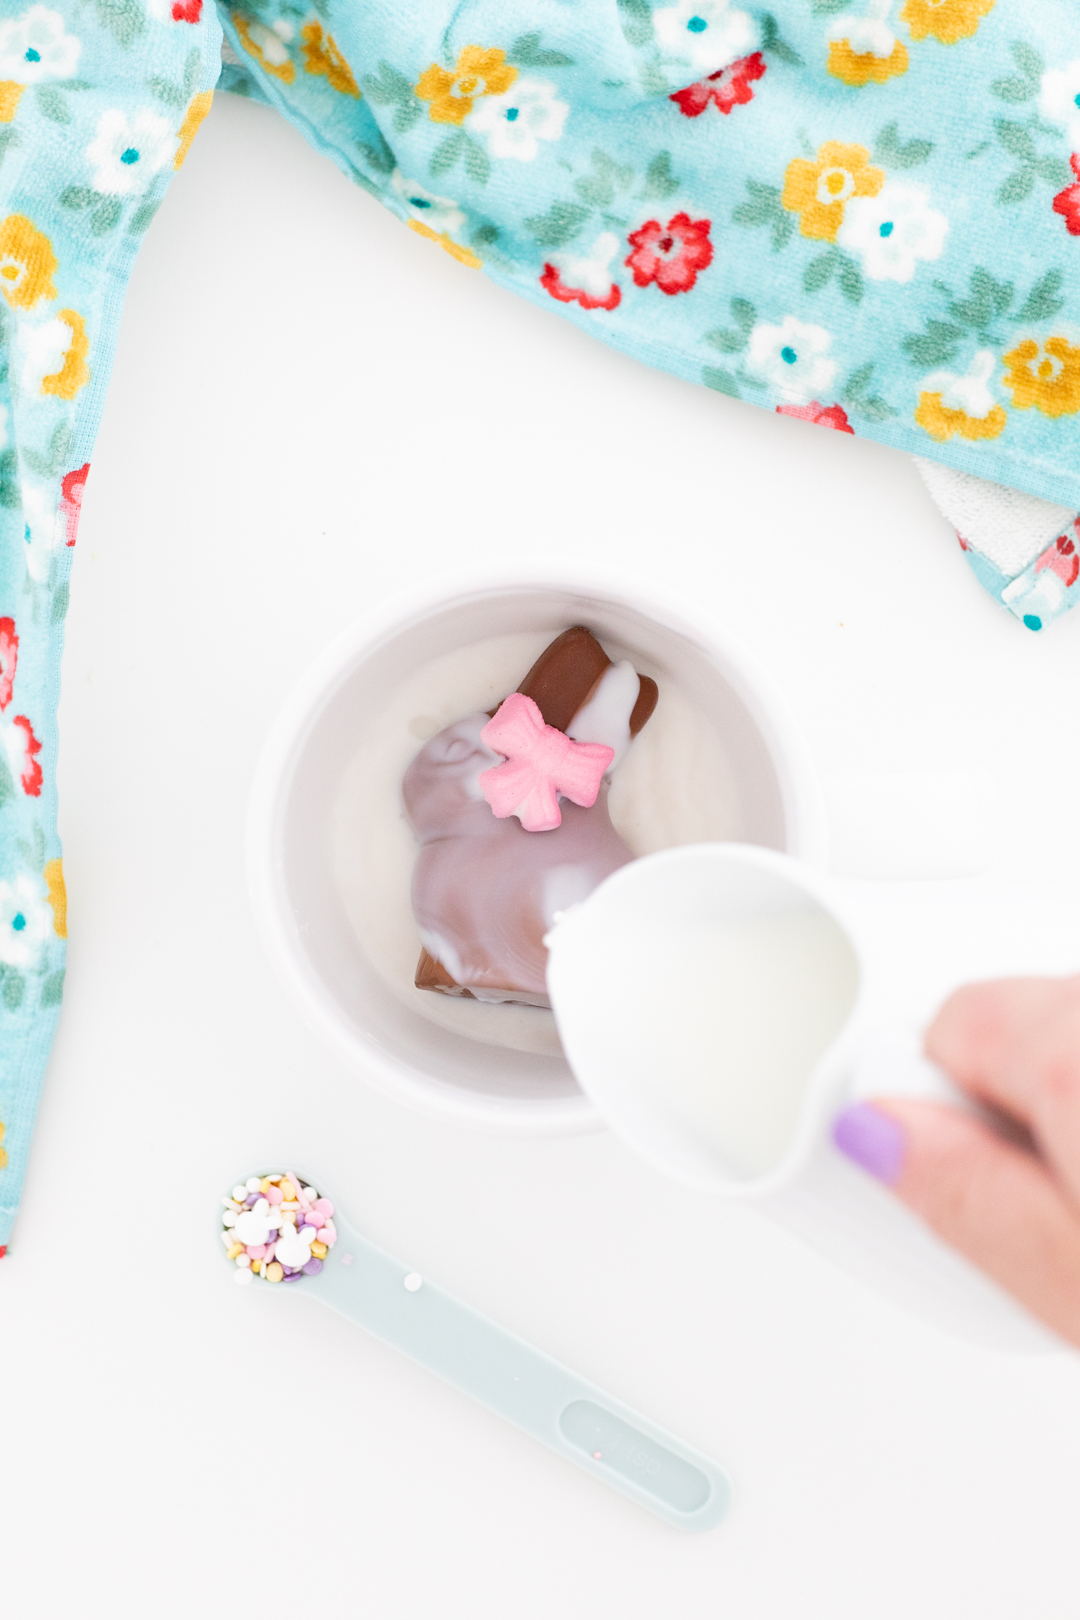 hot milk being poured over an easter bunny hot cocoa melt in a large mug